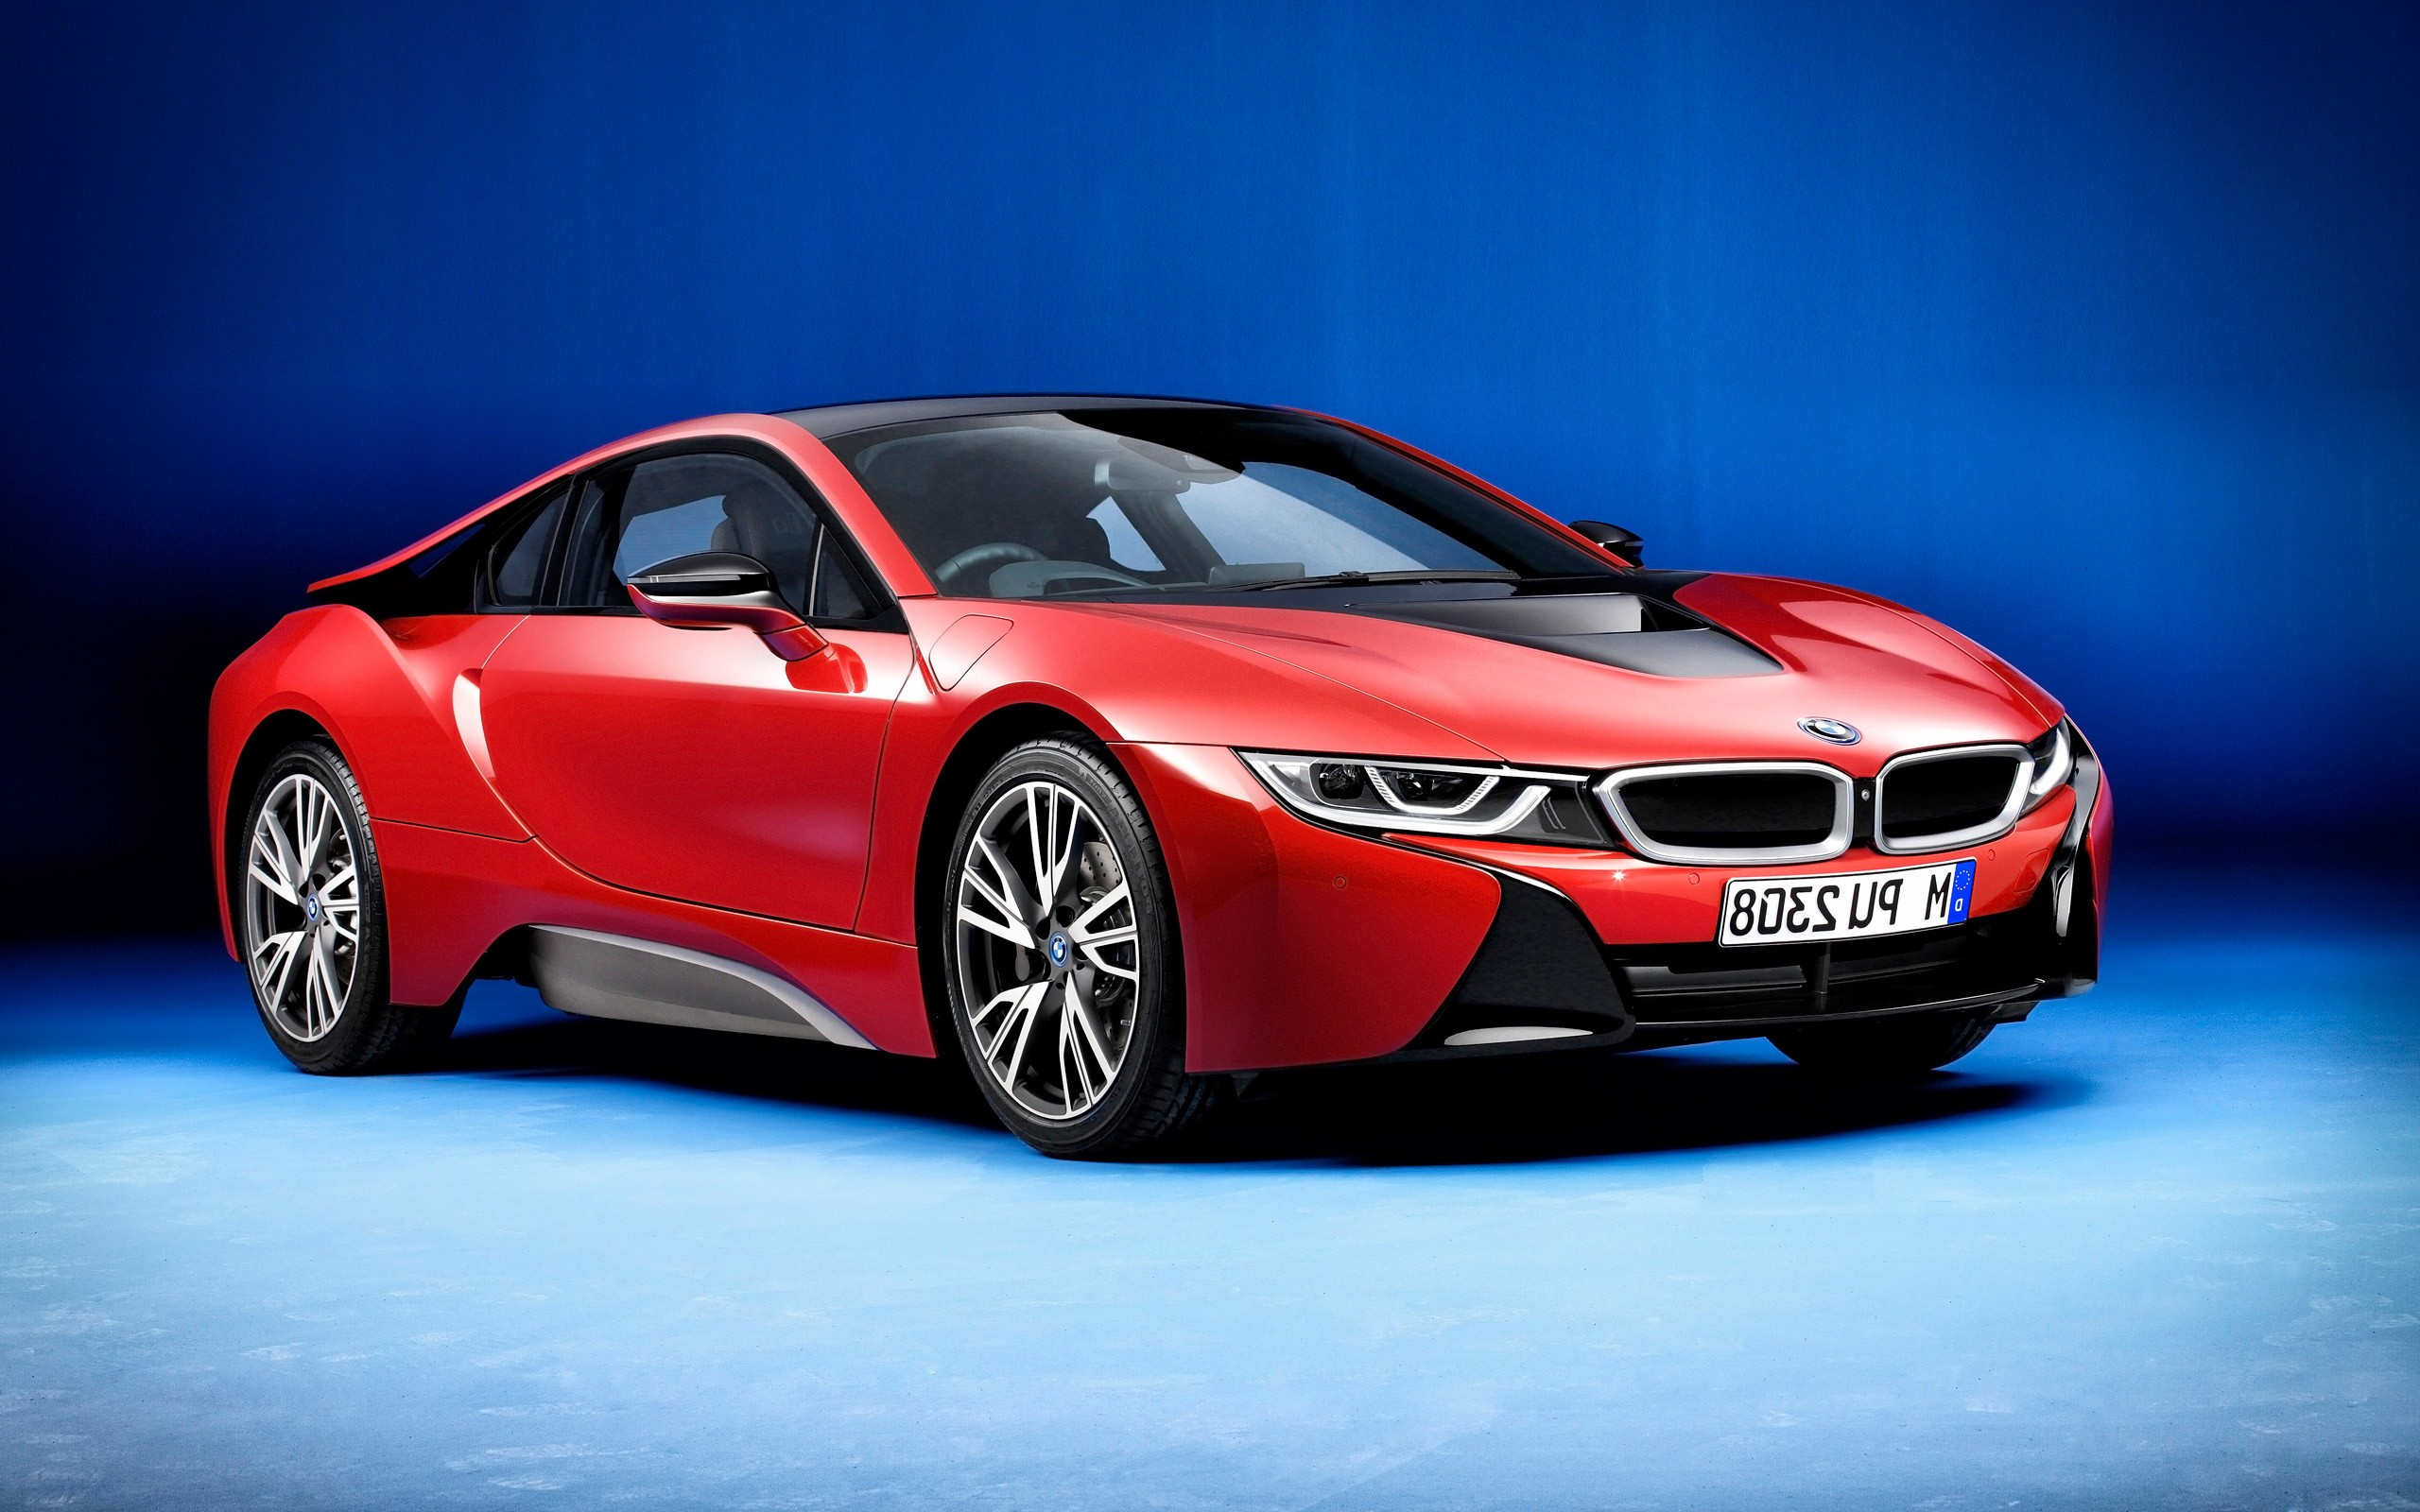 Protonic Edition Bmw I8 Hd Cars 4k Wallpapers Images Backgrounds Photos And Pictures